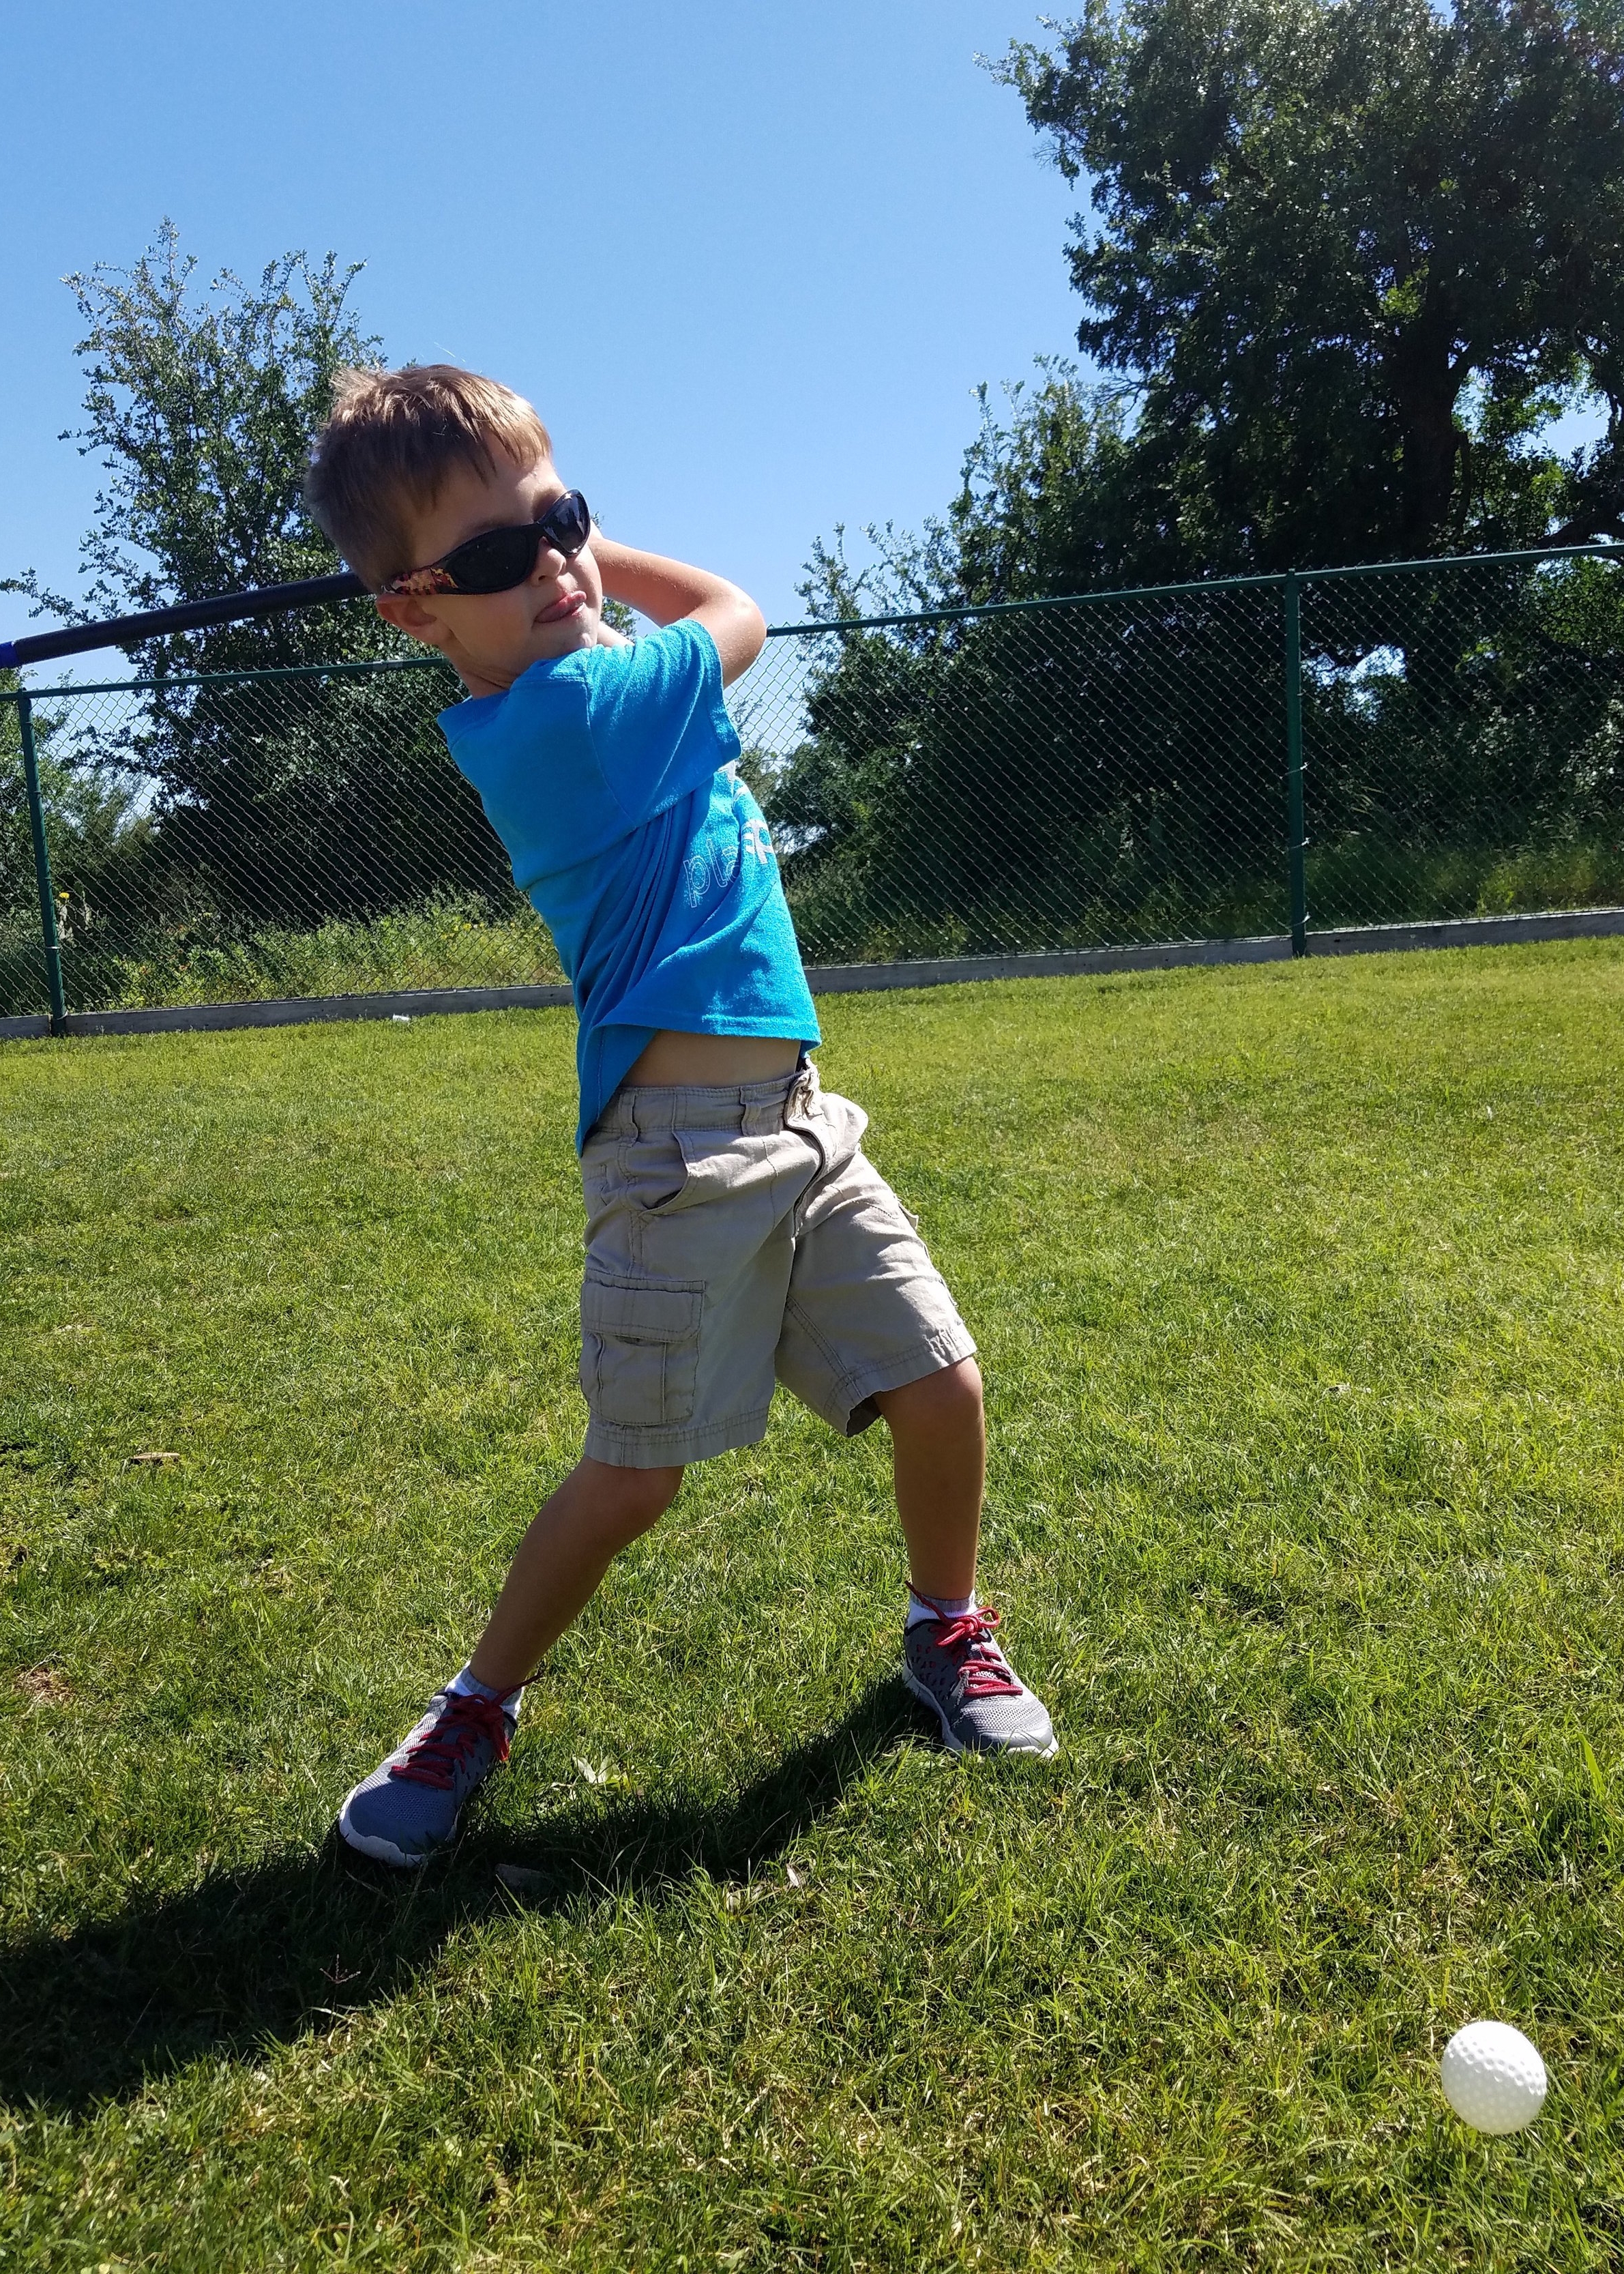 our mission - Using a low student to coach ratio, we empower students to grow and explore 9 different sports during the early stages of childhood development.Focused on gross and fine motor skills at this age, we incorporate body weight exercises to enhance muscle tone and memory.Learn More